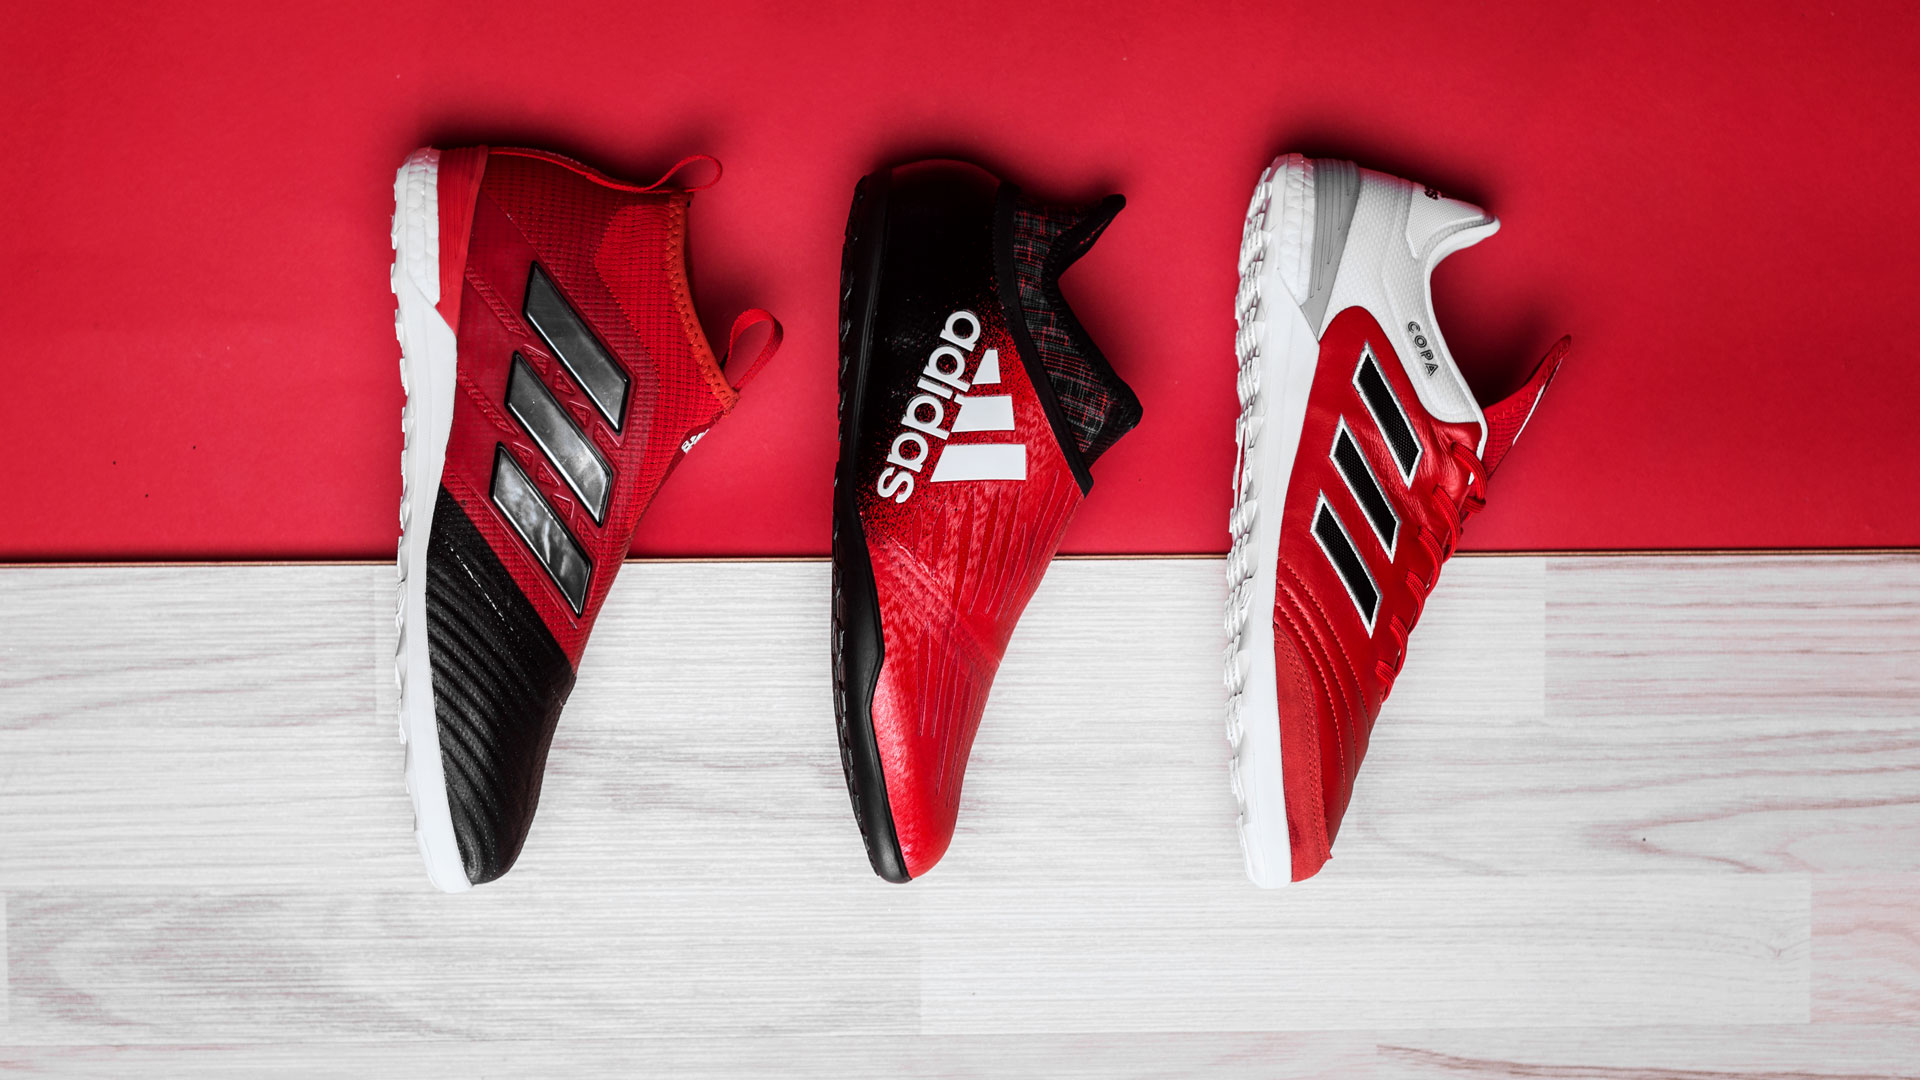 new products 8ca57 8577e adidas Tango collection  Pro-level performance for street and indoor  football